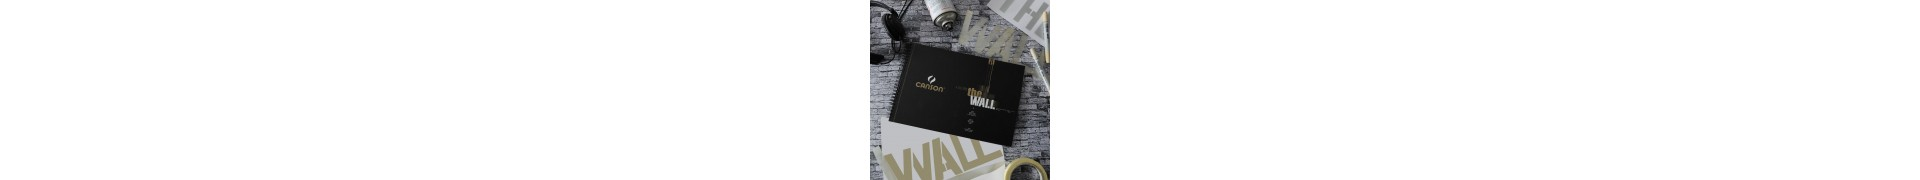 Album CANSON The wall - Format: (A4+) - 220 gr - 30 feuilles